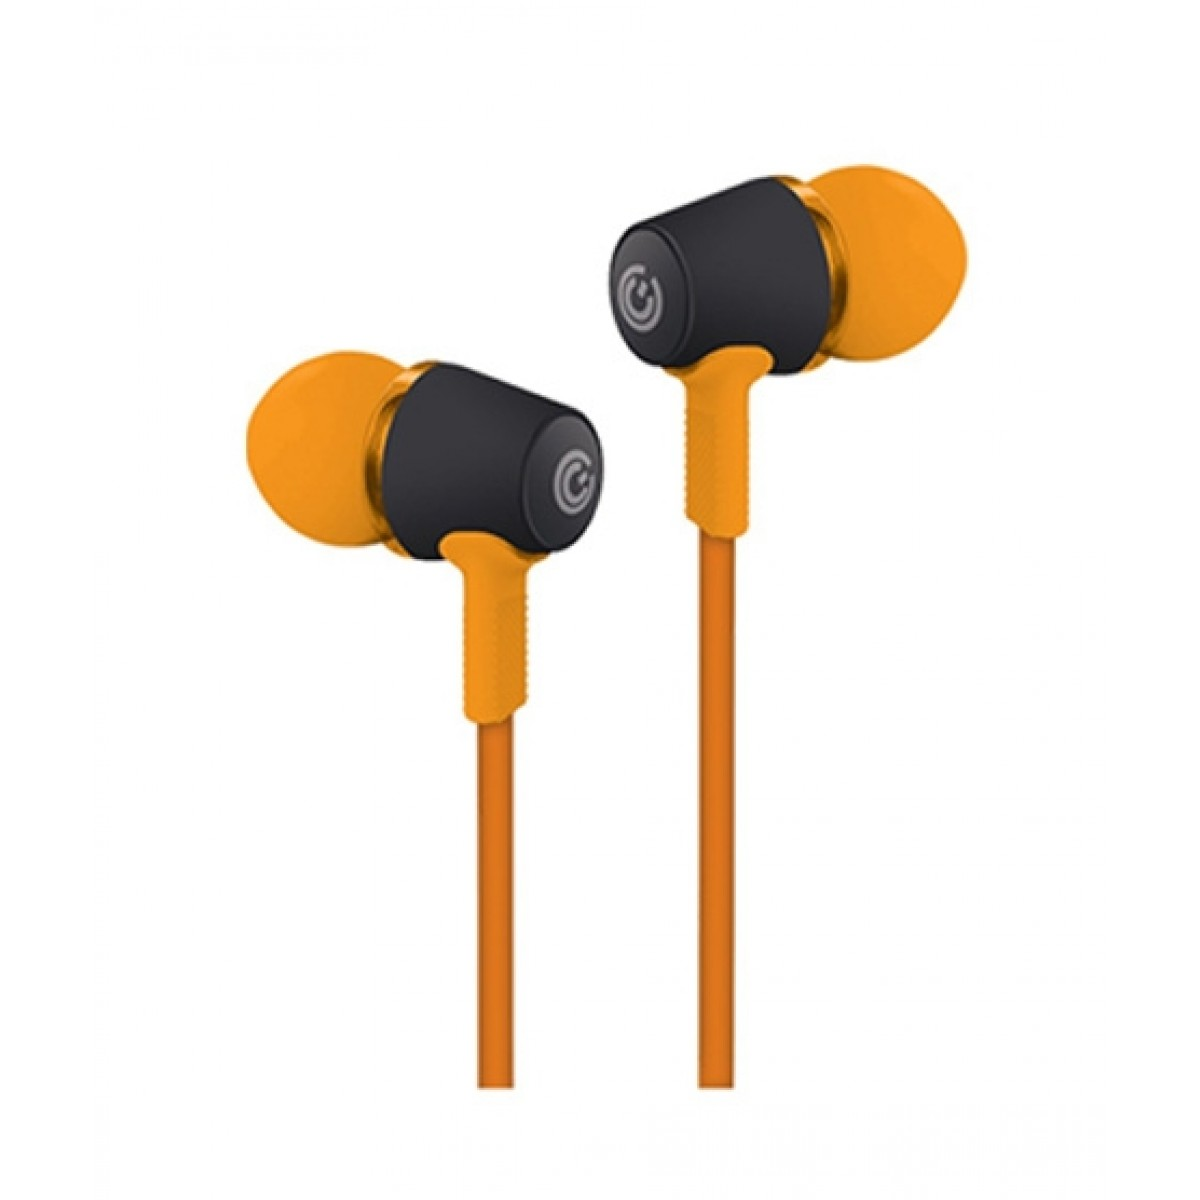 SonicGear AirPlug 200 Neo In-Ear Headphones Orange